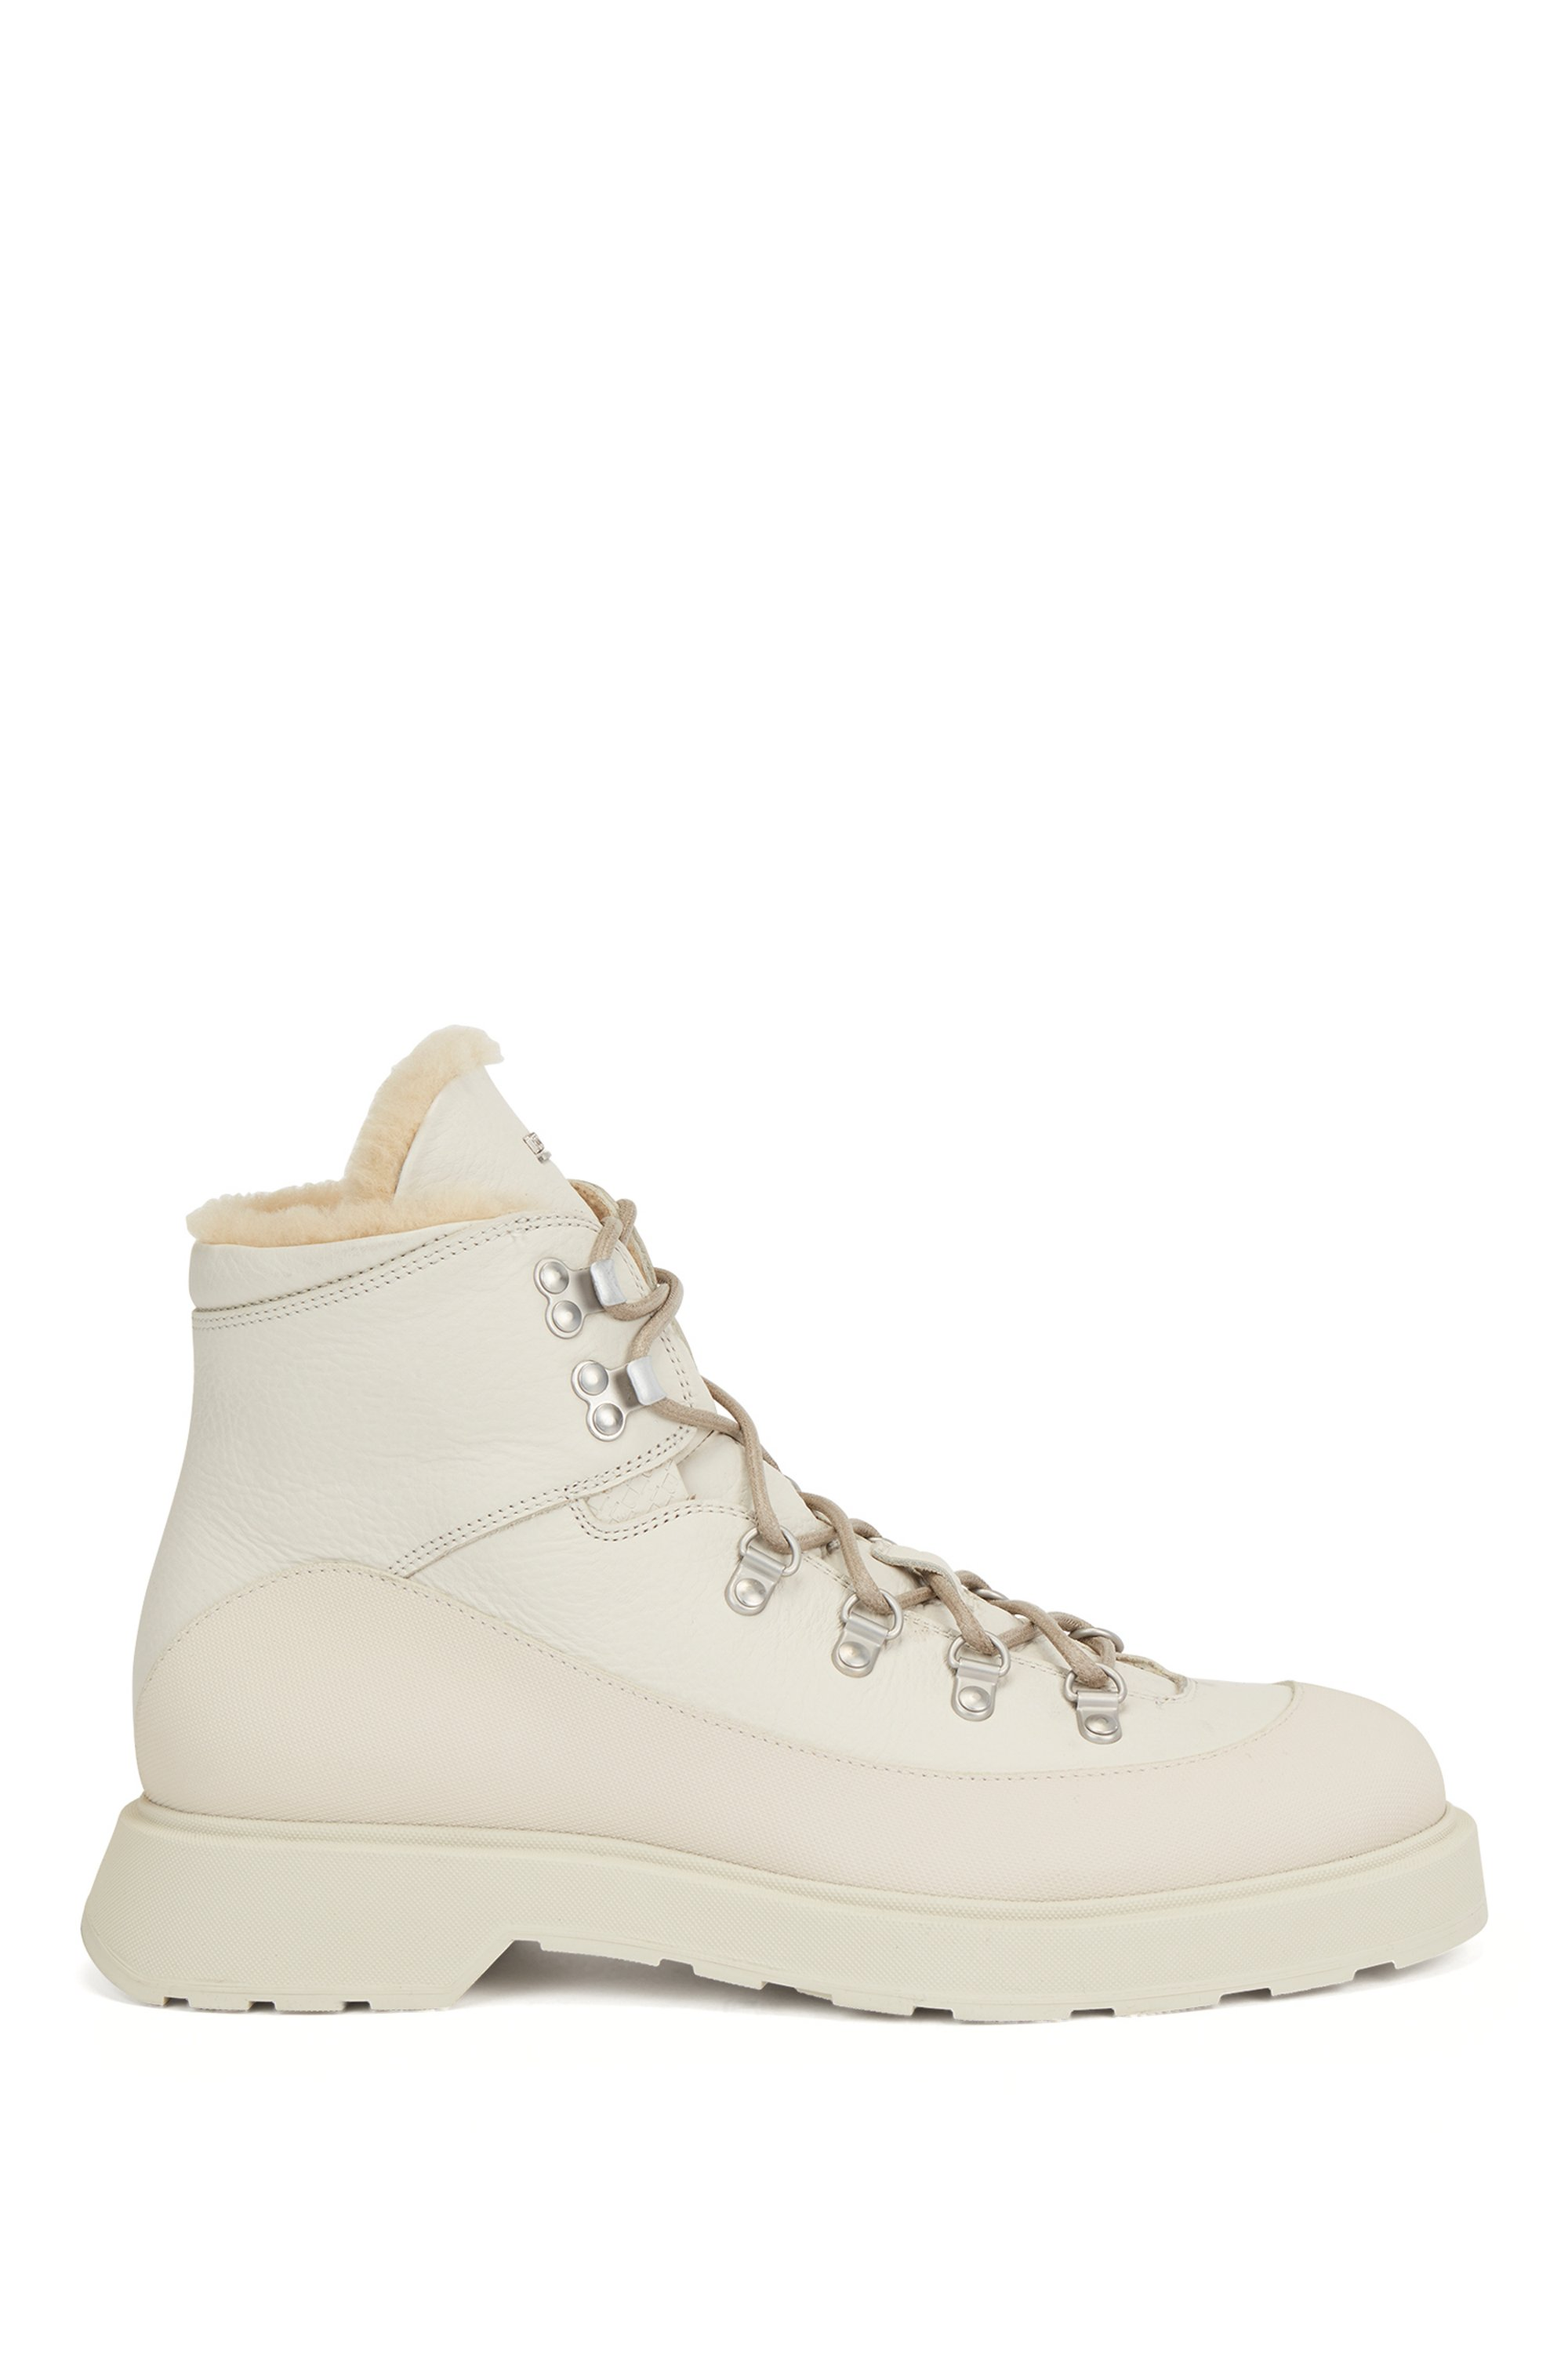 Hiking-style boots in printed leather with shearling lining, White